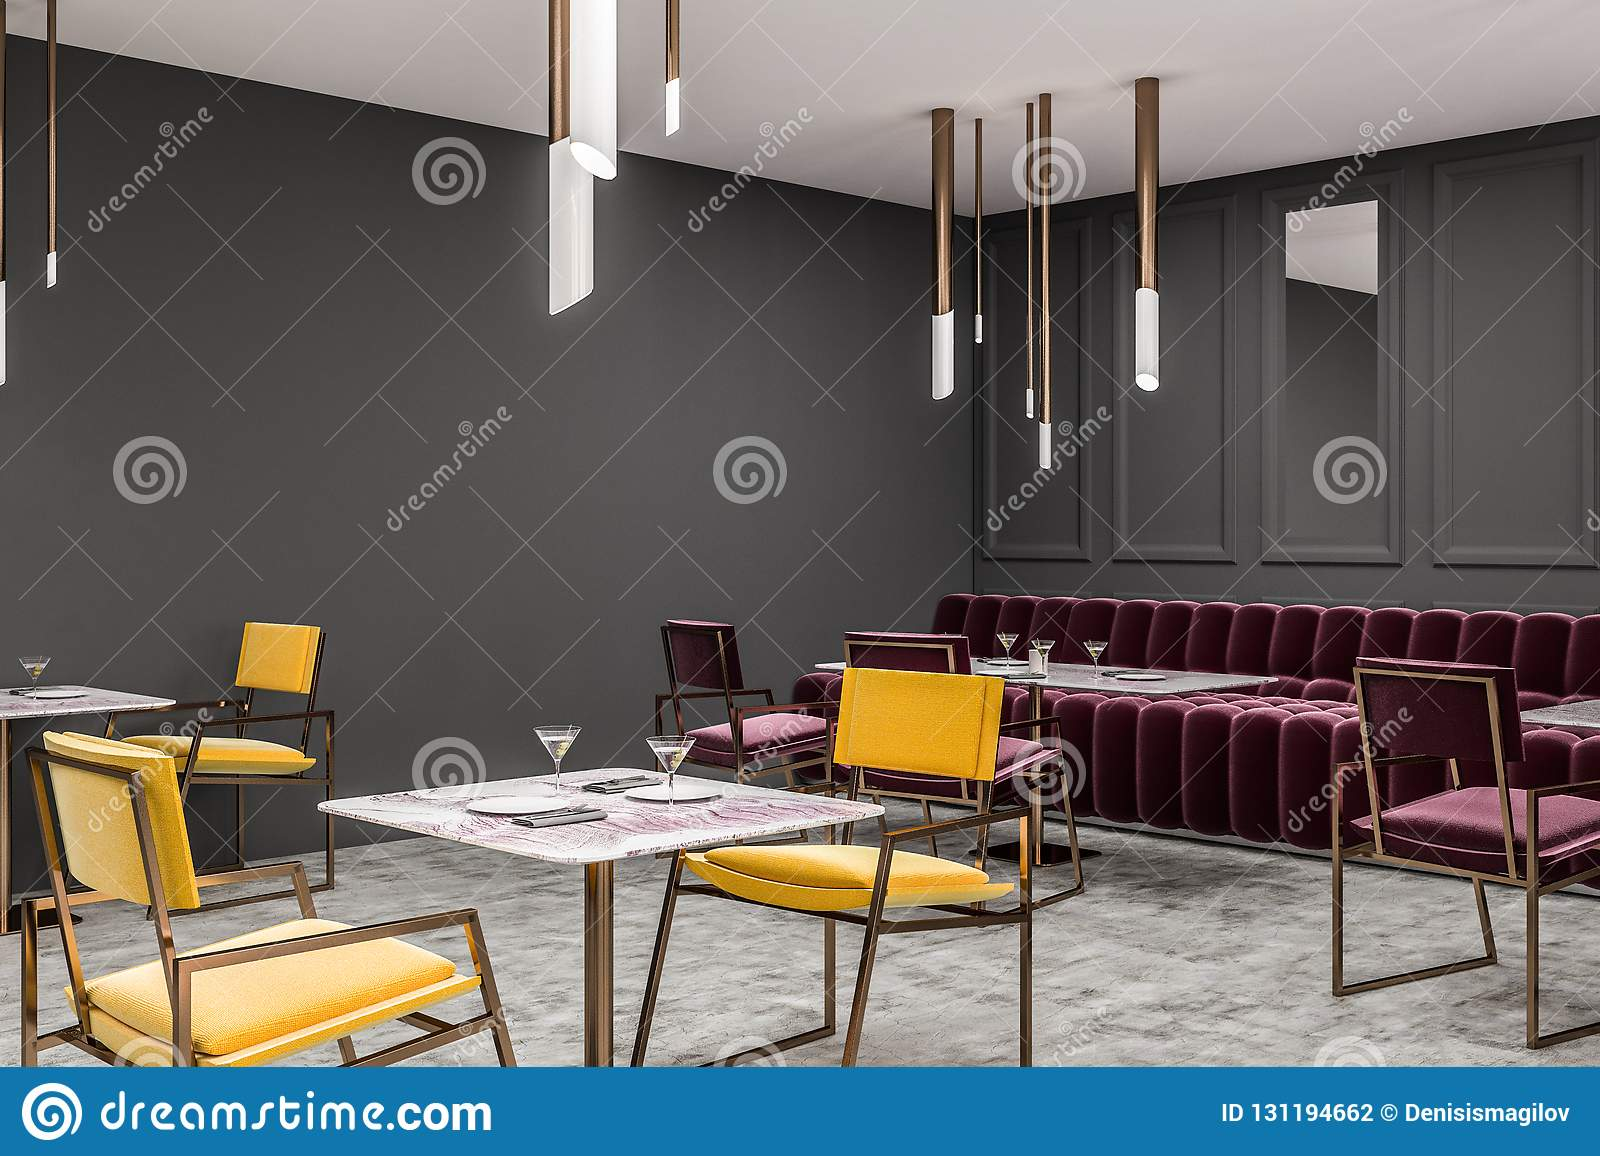 Gray Cafe Corner Red Sofa Yellow Chairs Stock Illustration Illustration Of Design Dining 131194662